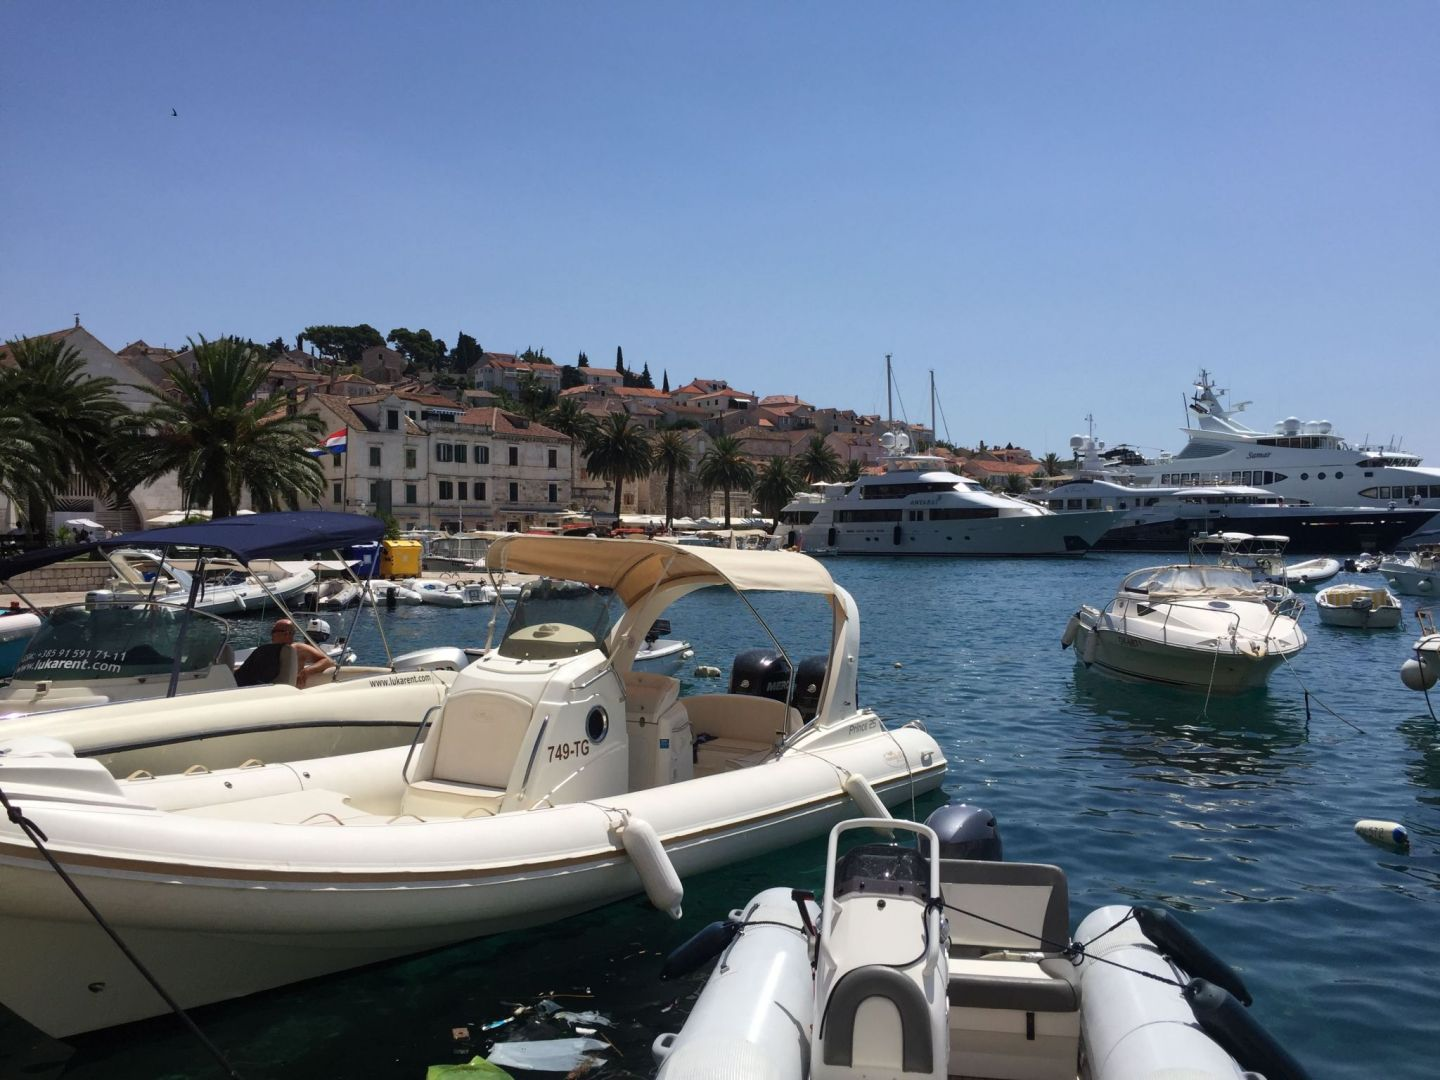 Boats in Hvar, Croatia